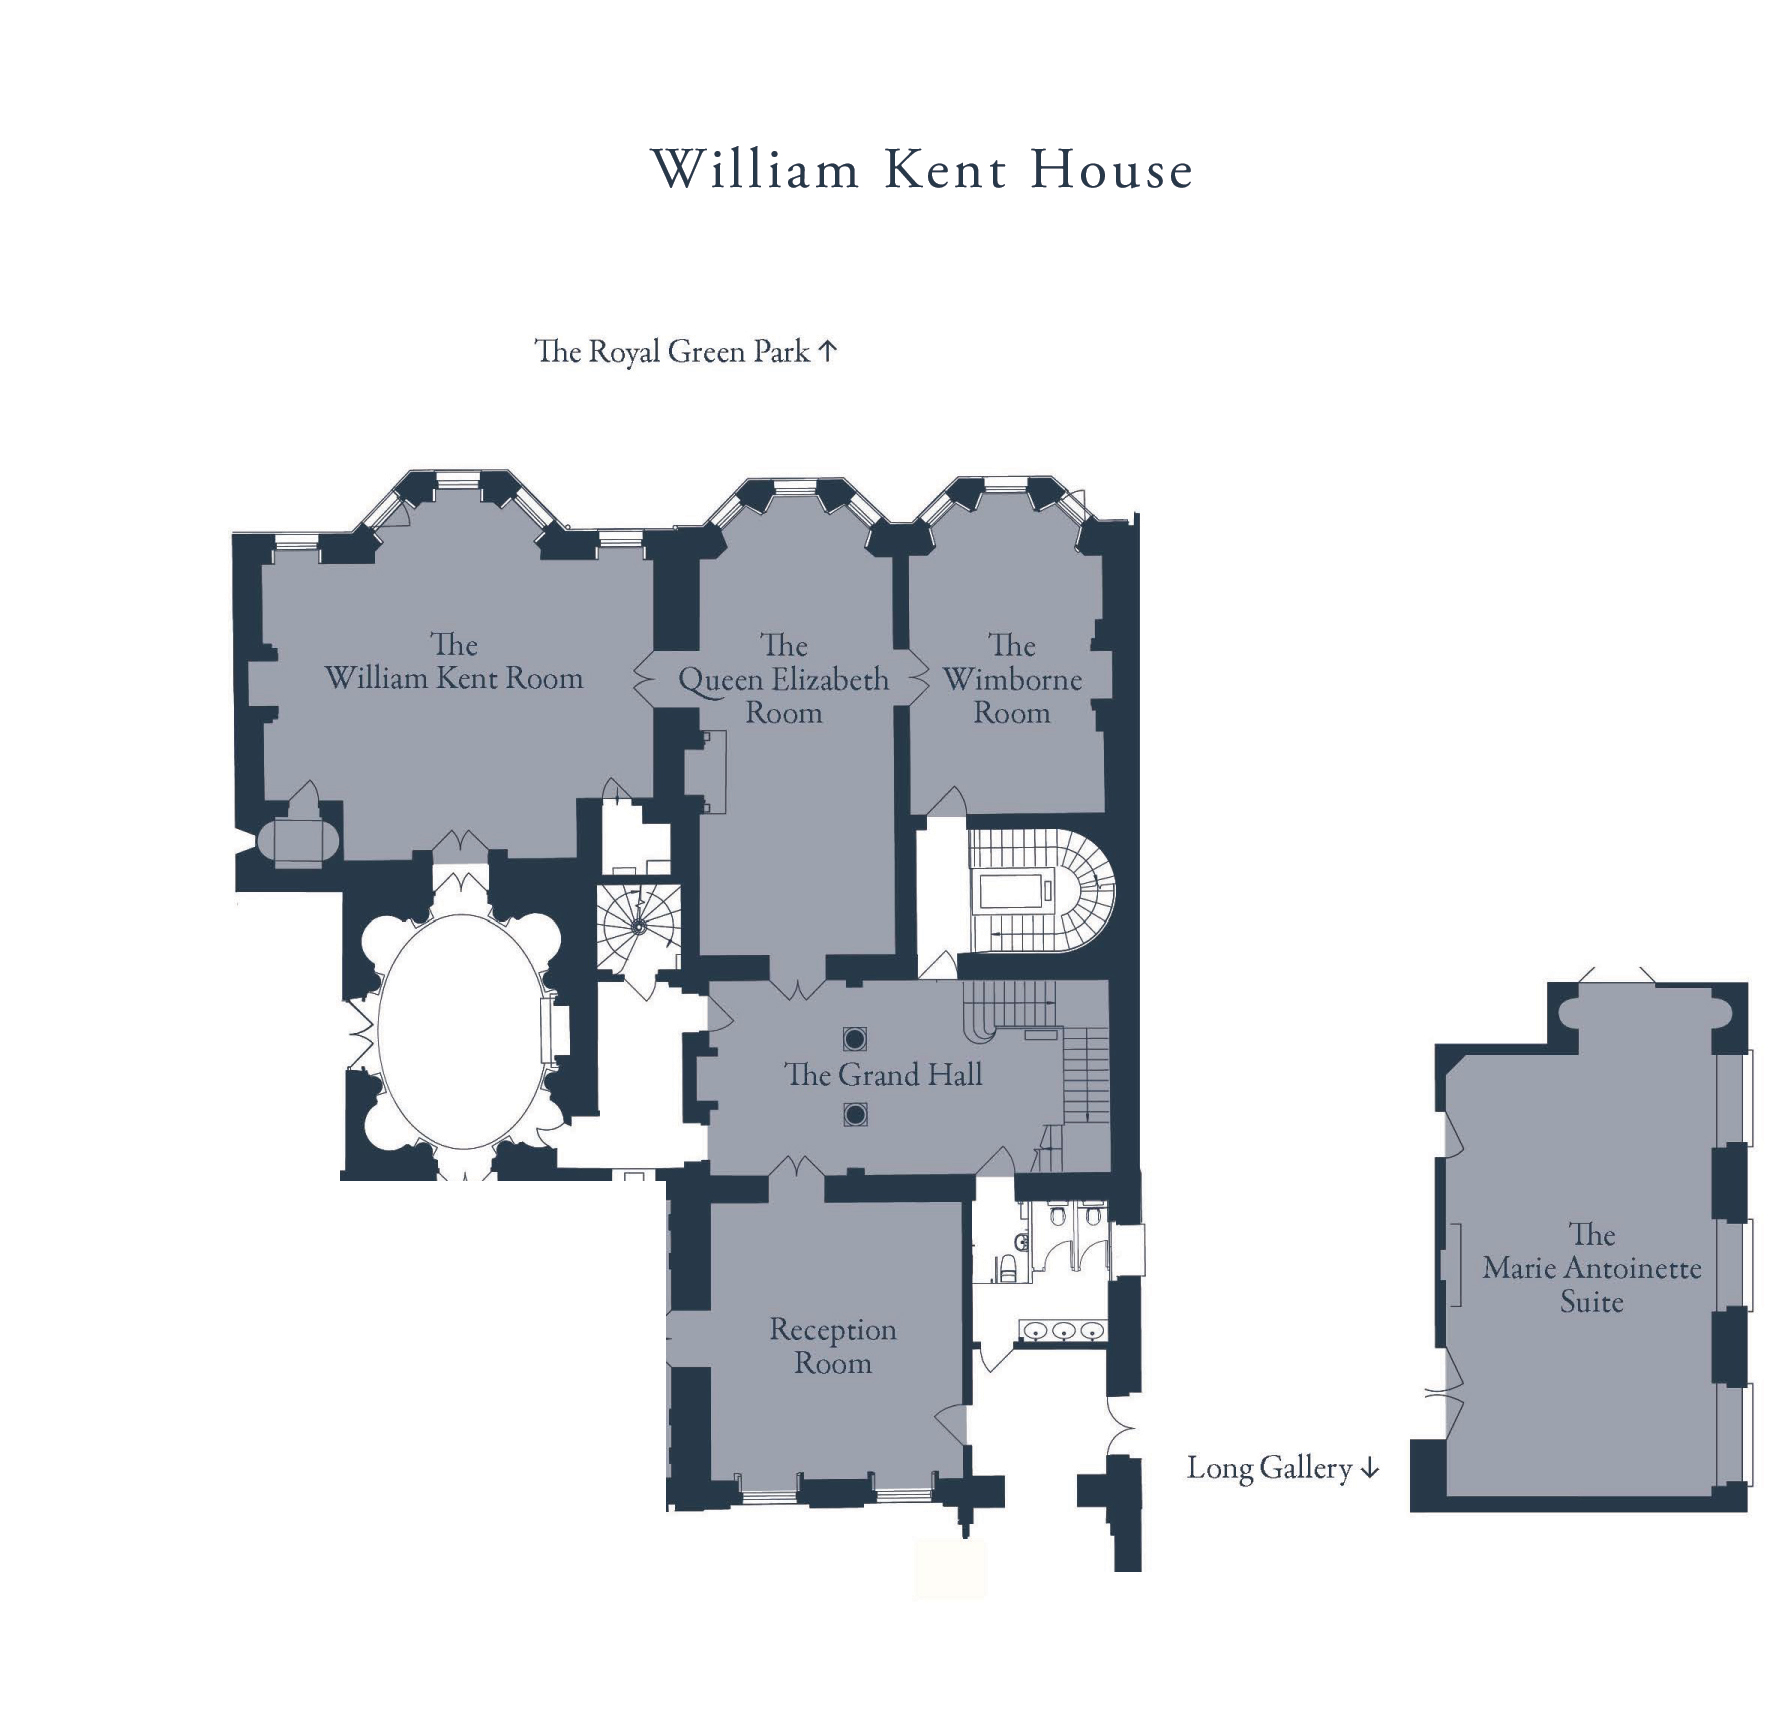 William Kent House Floor plan